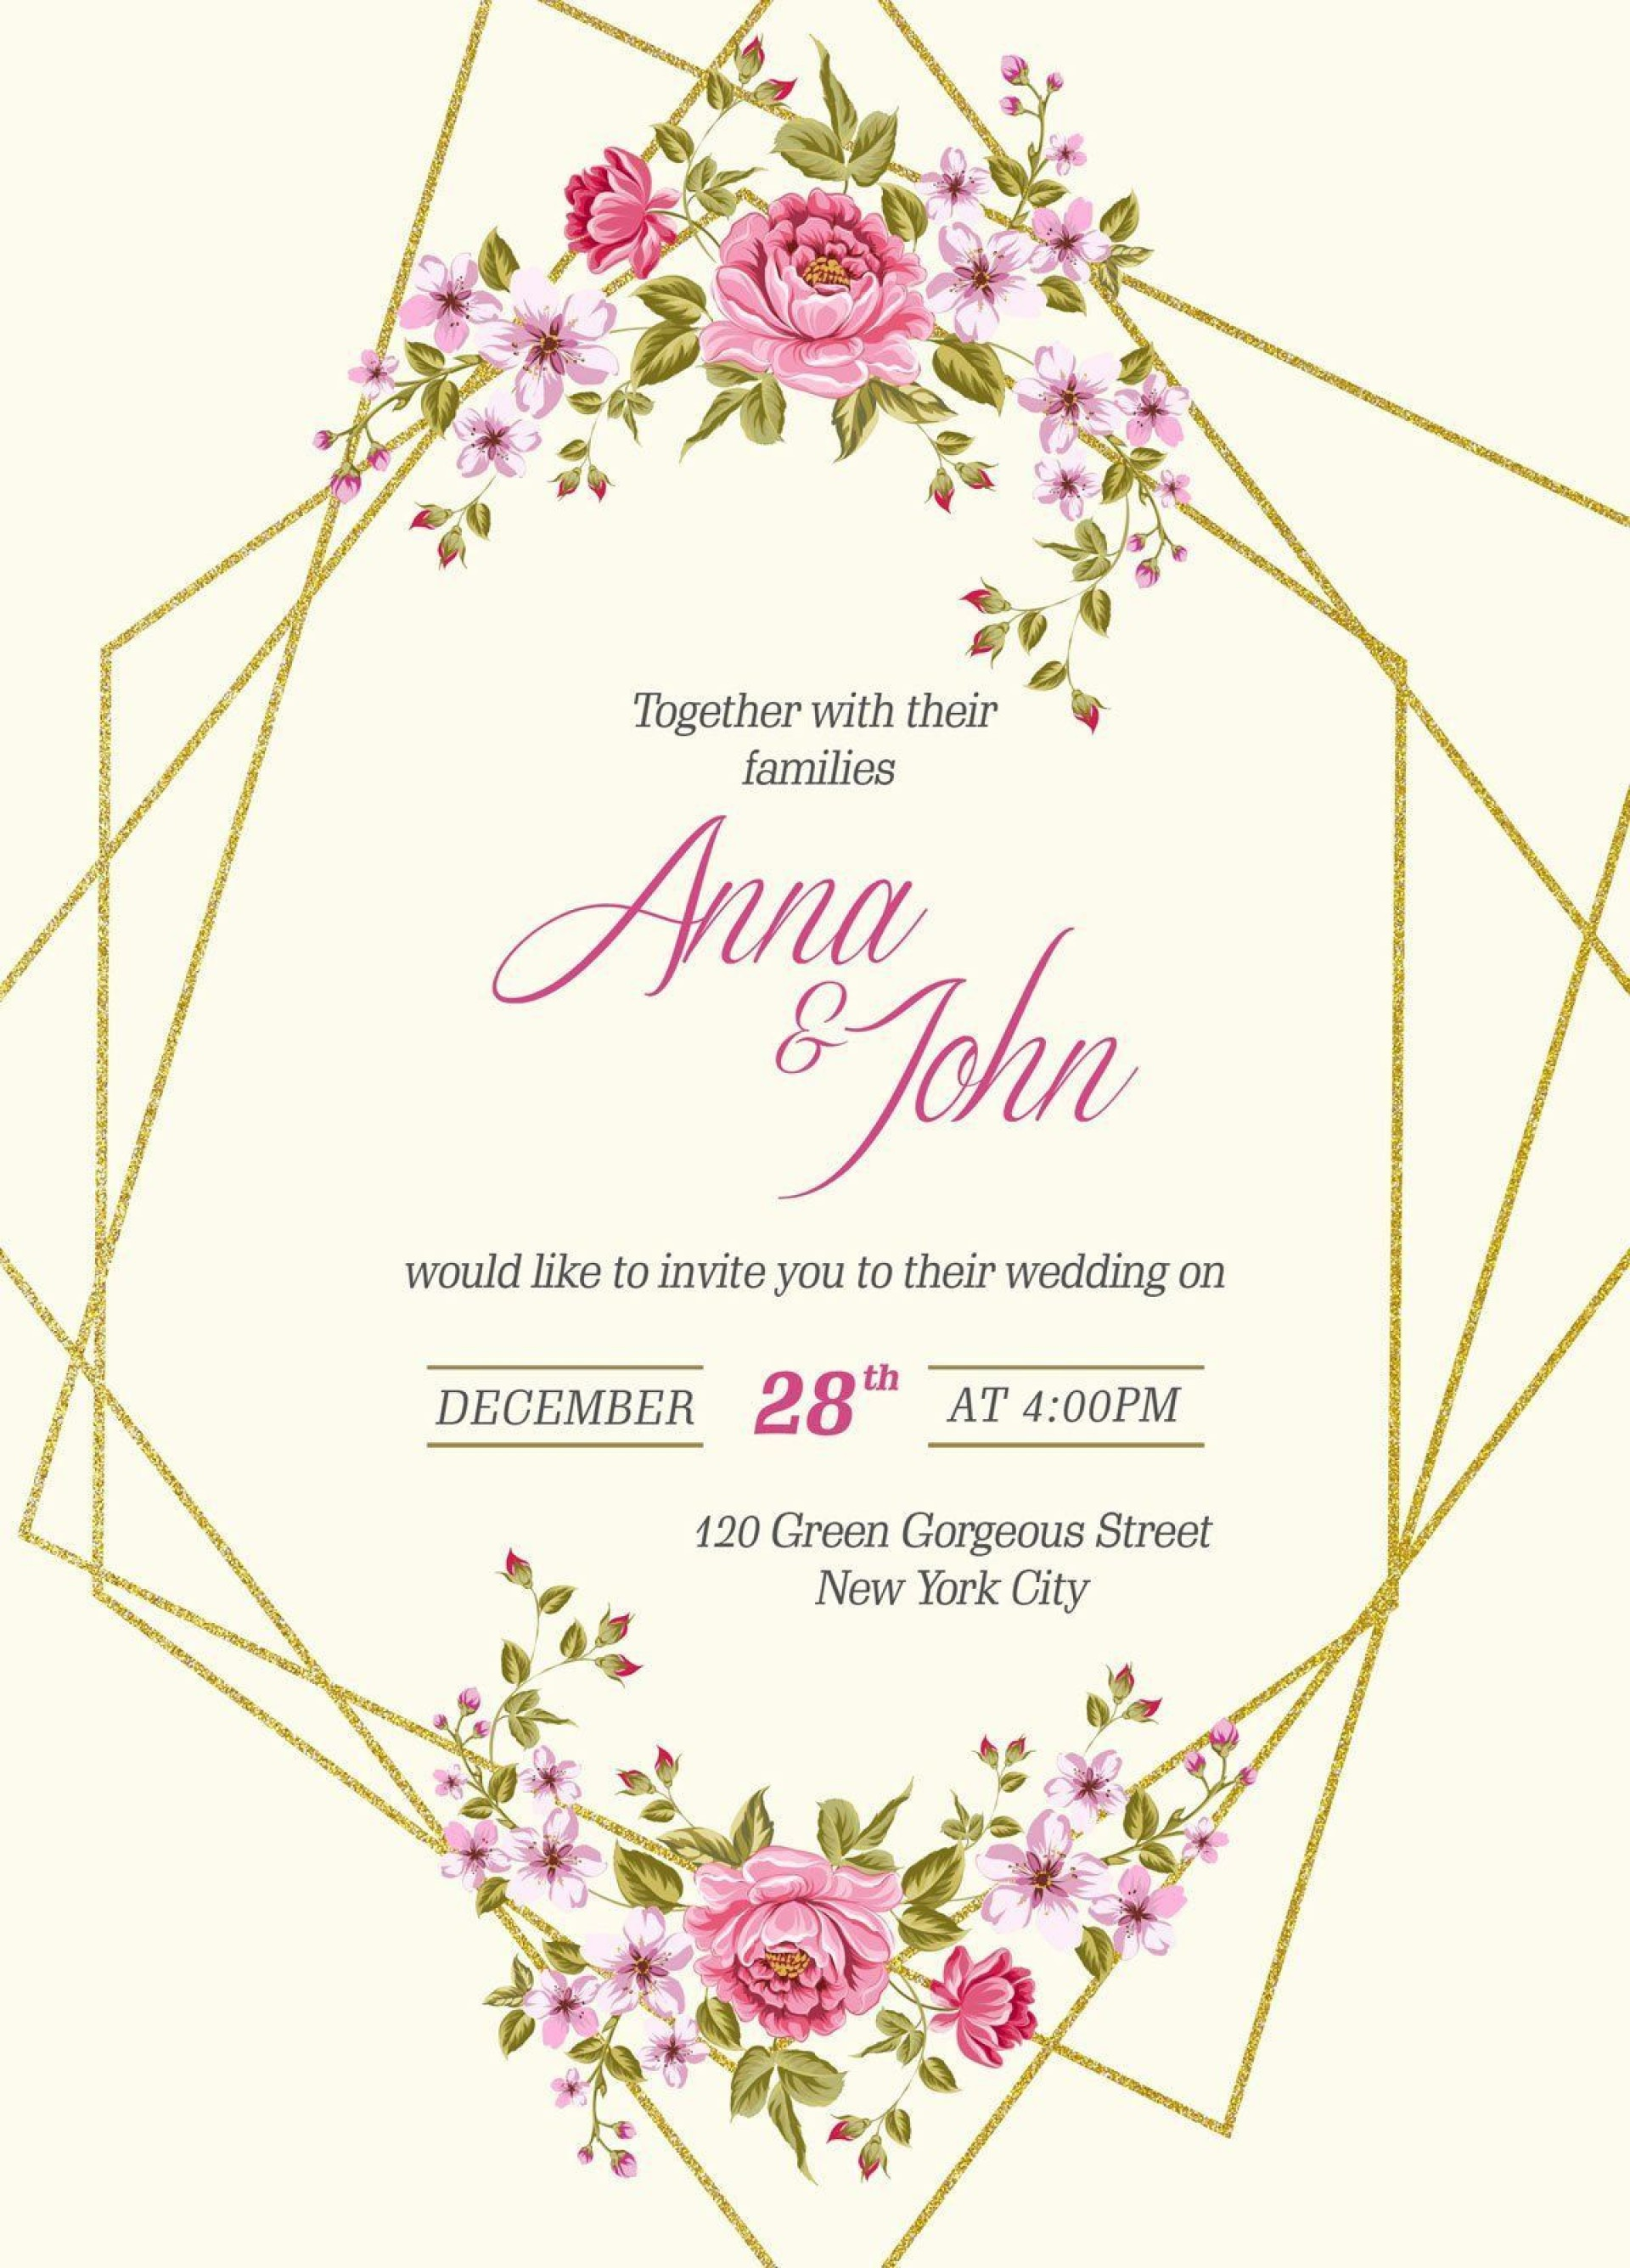 005 Wondrou Download Free Wedding Invitation Card Template Concept  Indian-traditional-wedding-invitation-card-psd-template-free-download Indian Psd Format1920